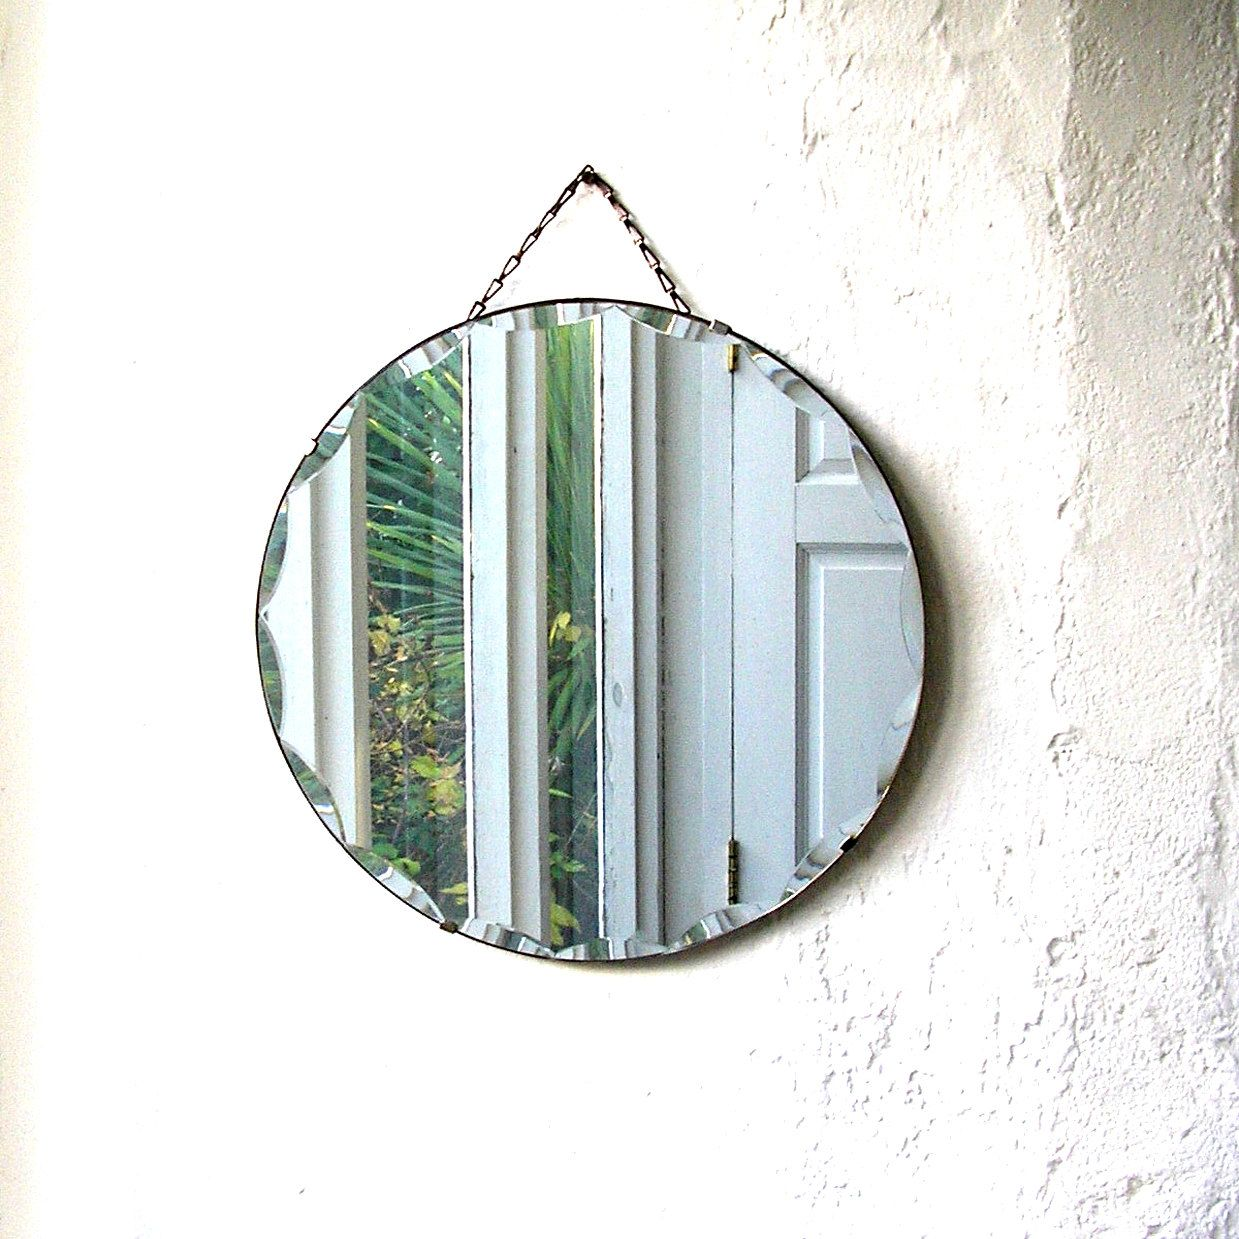 Vintage Art Deco round bevelled glass mirror circular 1930s wall hanging over mantle mirror glass chain retro living room hall decoration by IrishBarnVintage on Etsy